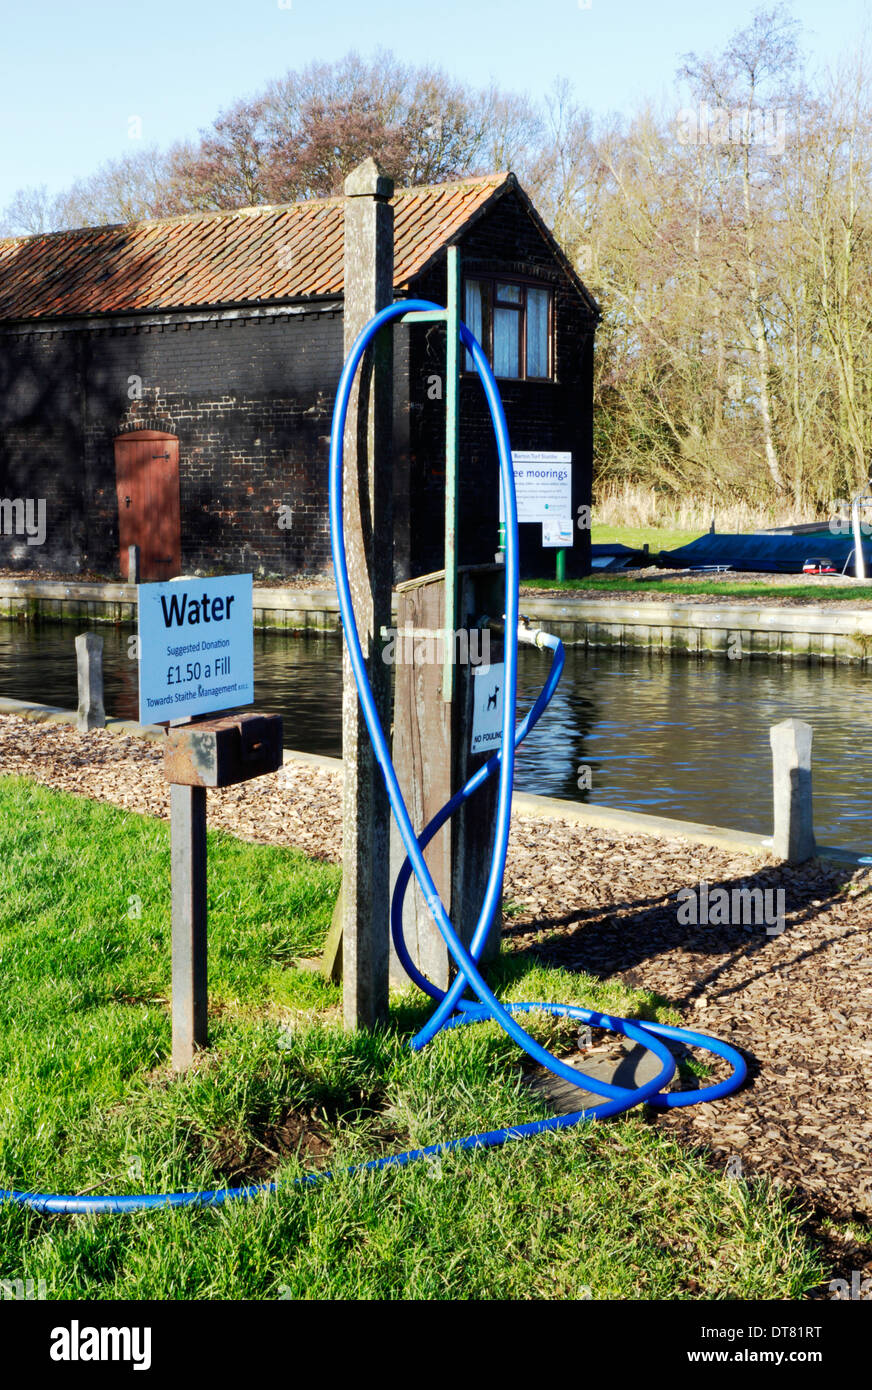 A water fill-up point for Broads craft at Barton Turf Staithe on the Norfolk Broads, England, United Kingdom. - Stock Image